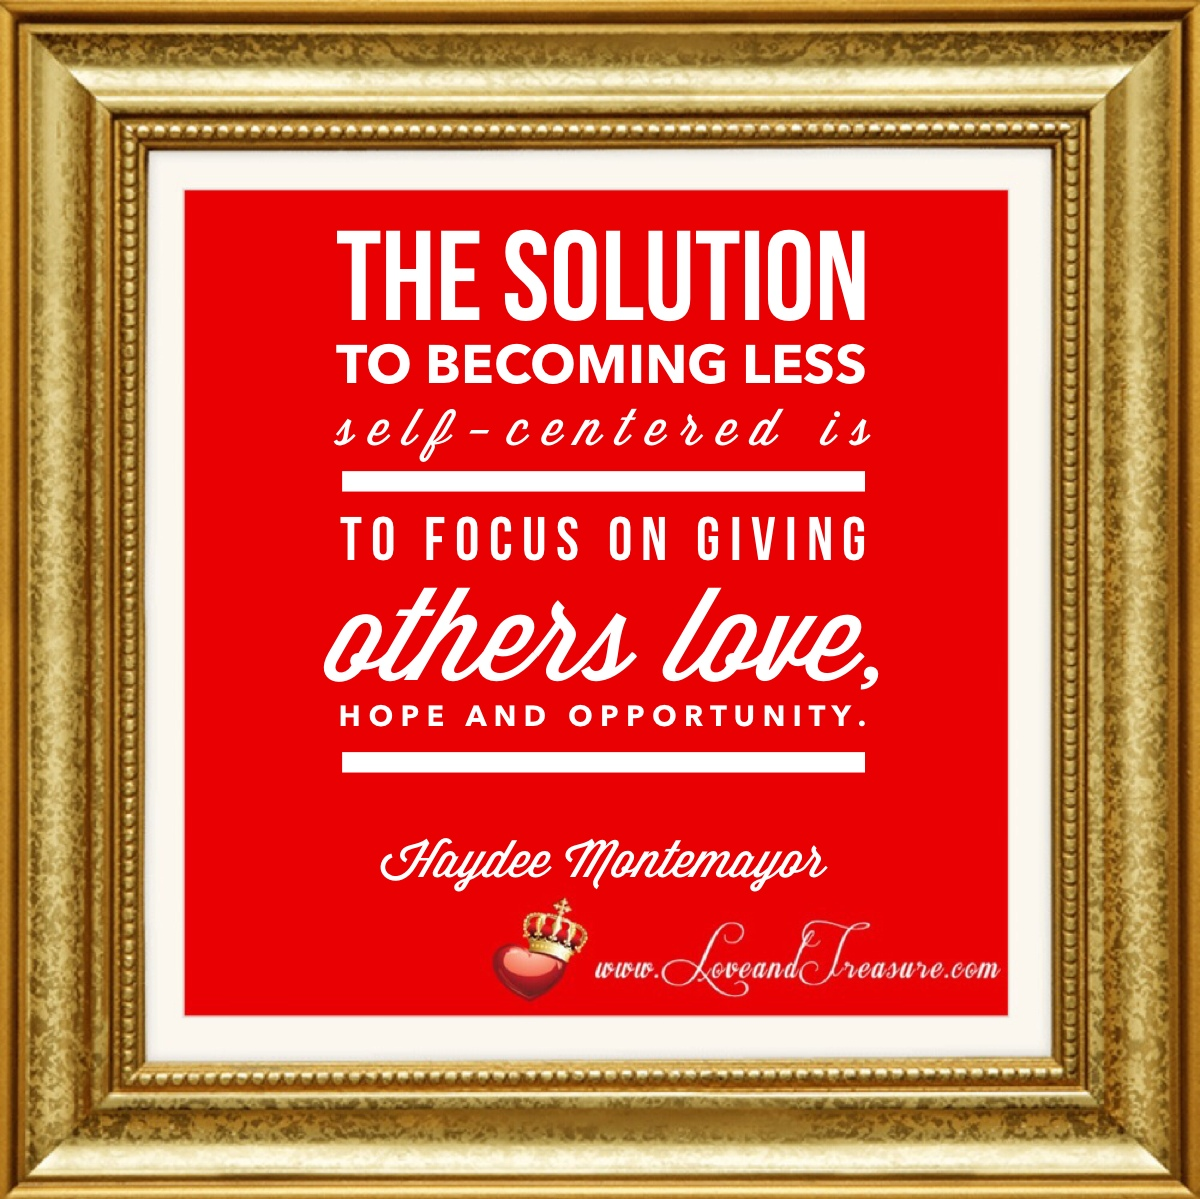 http://loveandtreasure.com/wp-content/uploads/2014/10/The-Solution-to-Becoming-Less-self-centered-is-to-focus-on-giving-others-love-hope-and-opportunity.jpg, the solution to becoming less self centered is to focus on giving others love, hope and opportunity, haydee montemayor, Why Aren't More People Focusing on Love? Answer: We're so self-centered!, love and treasure